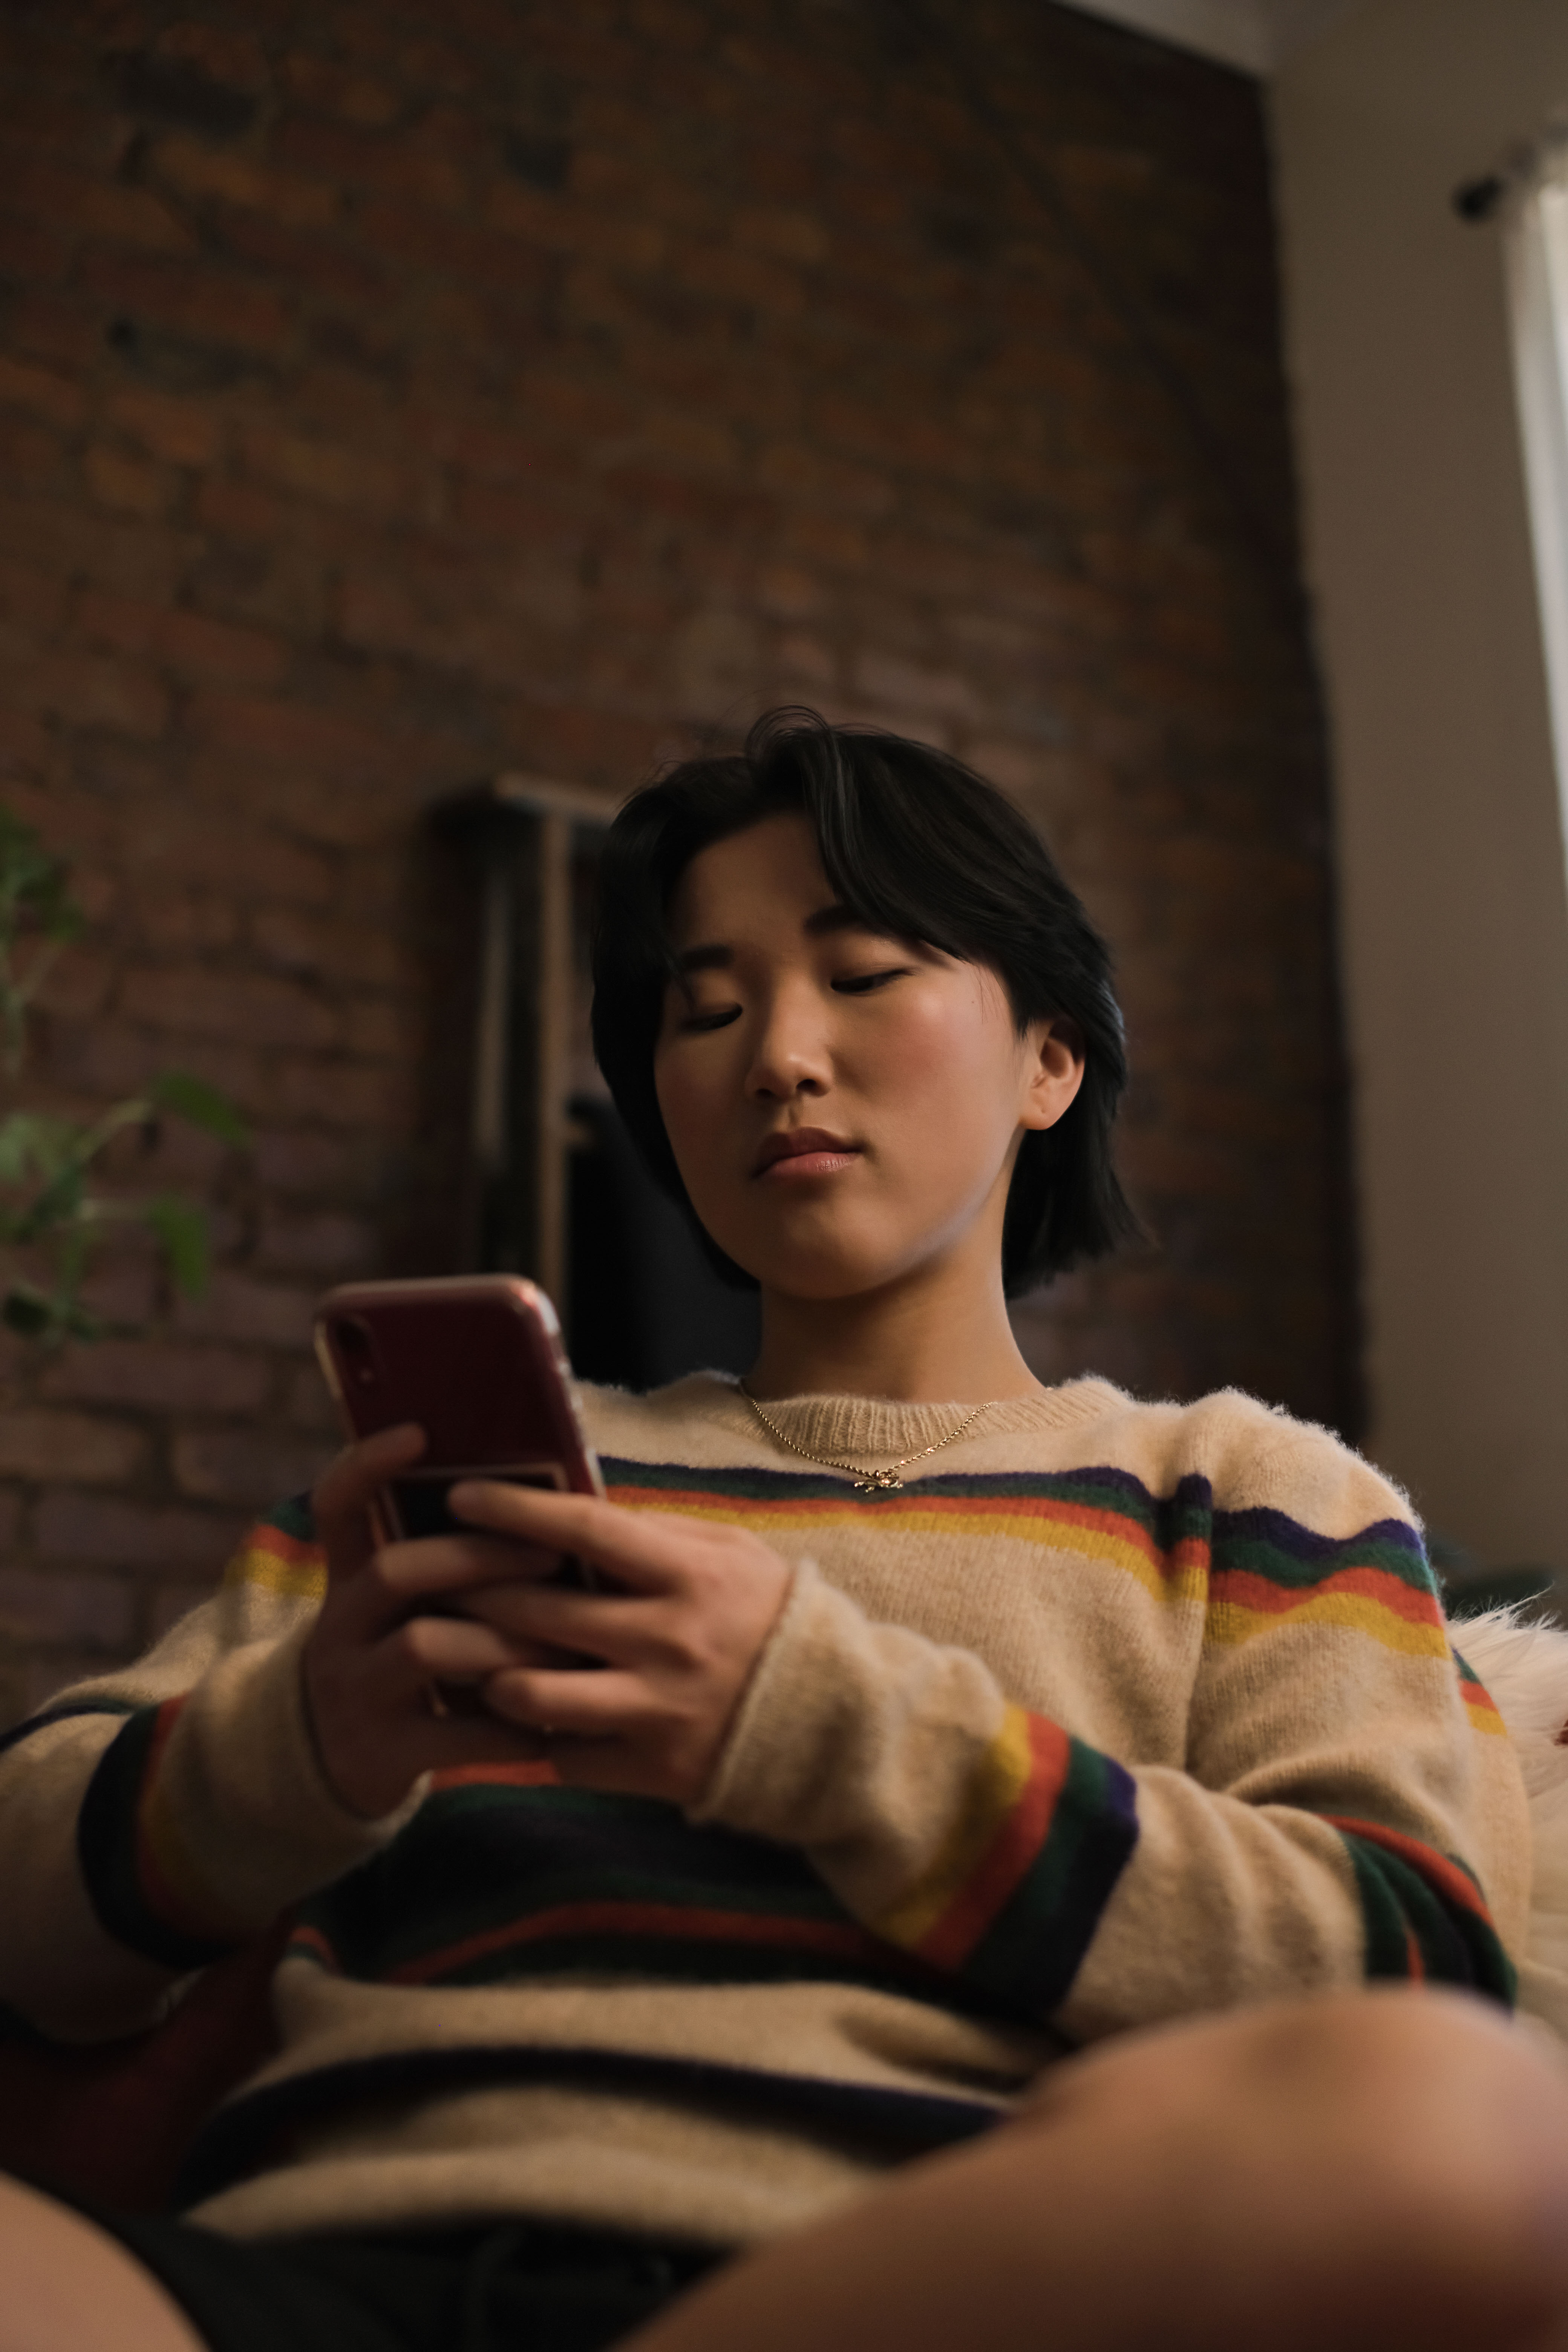 A non-binary person looking at a cellphone